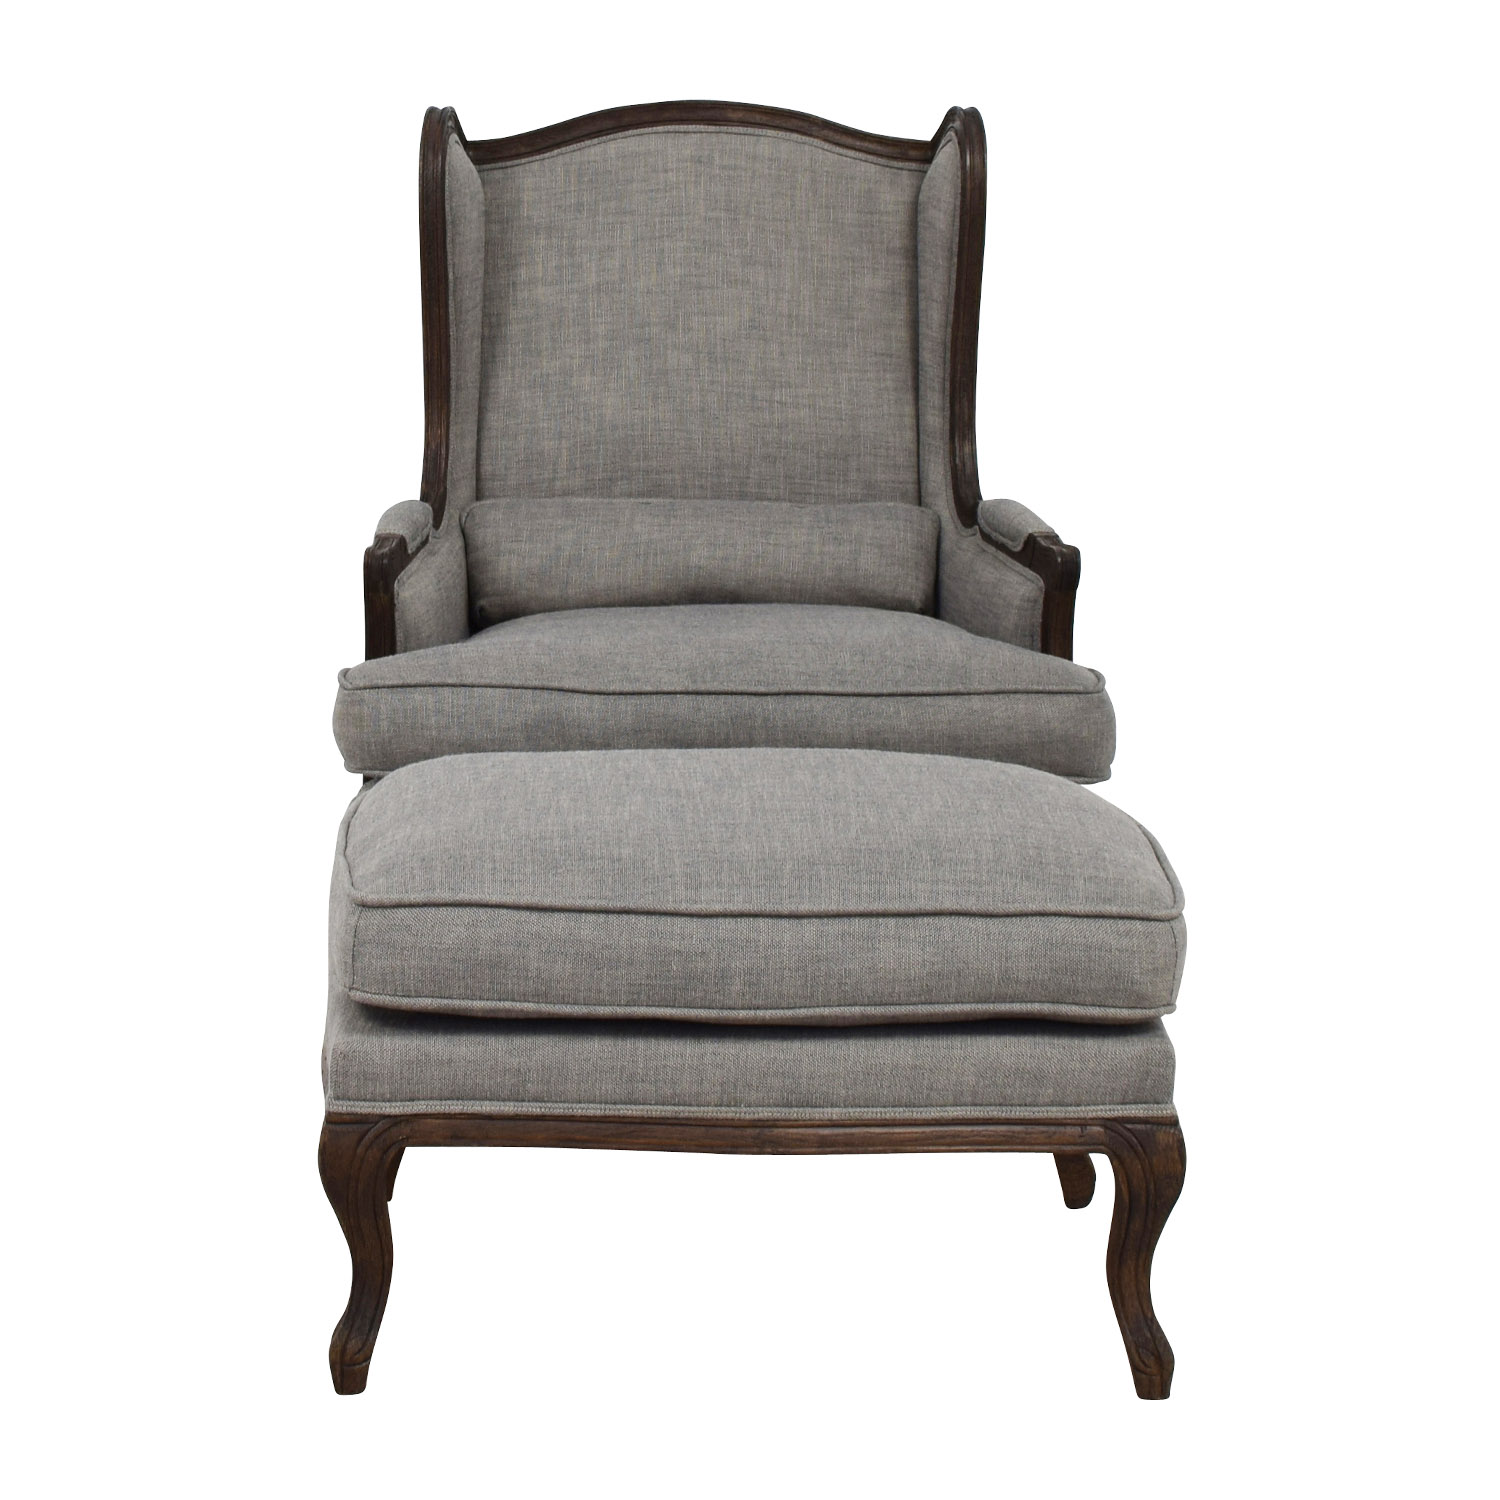 Restoration Hardware Grey Chair And Ottoman Online